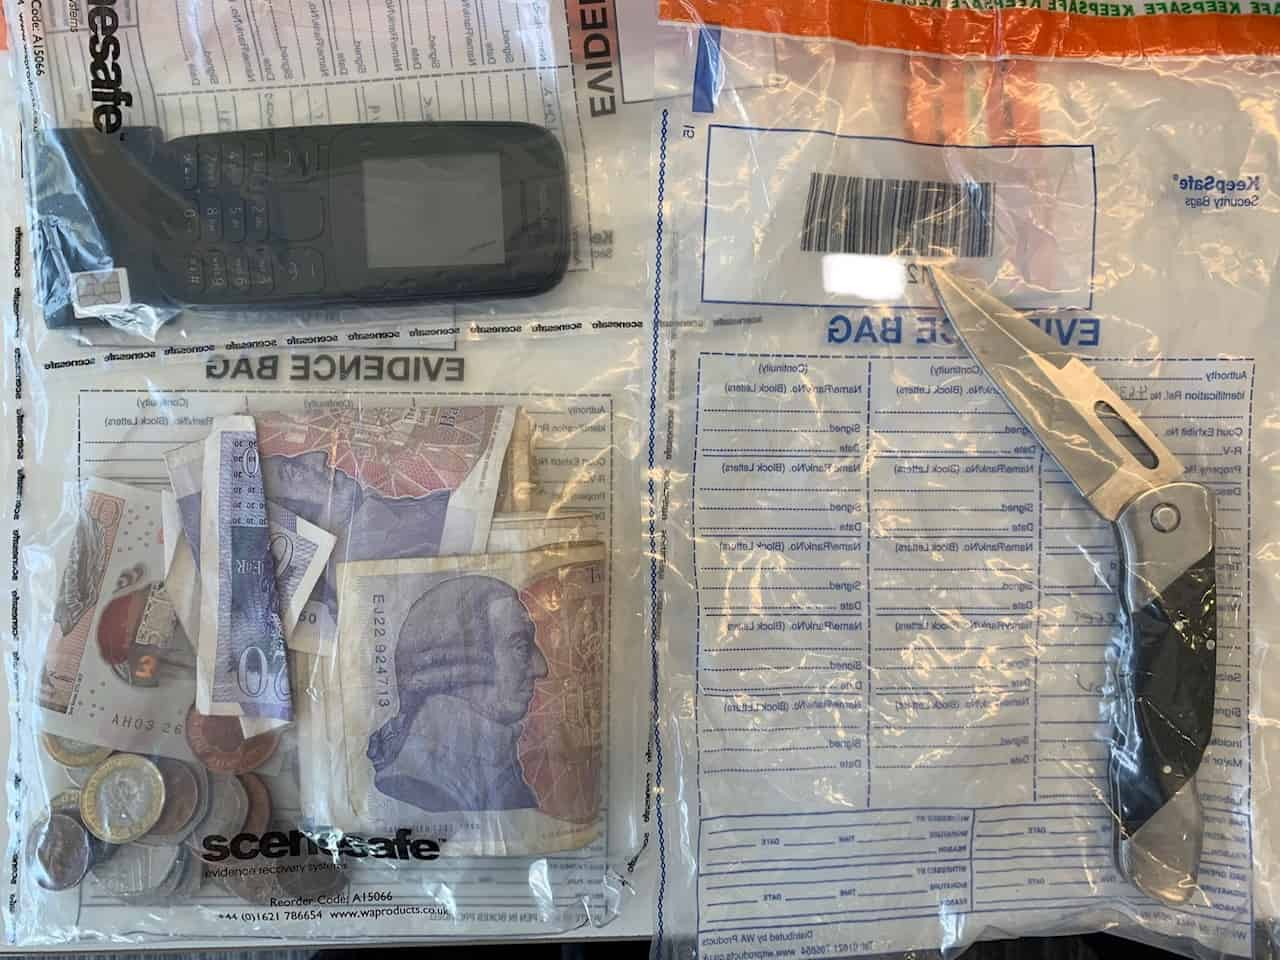 Knife and drugs paraphernalia seized following arrest in Yeovil